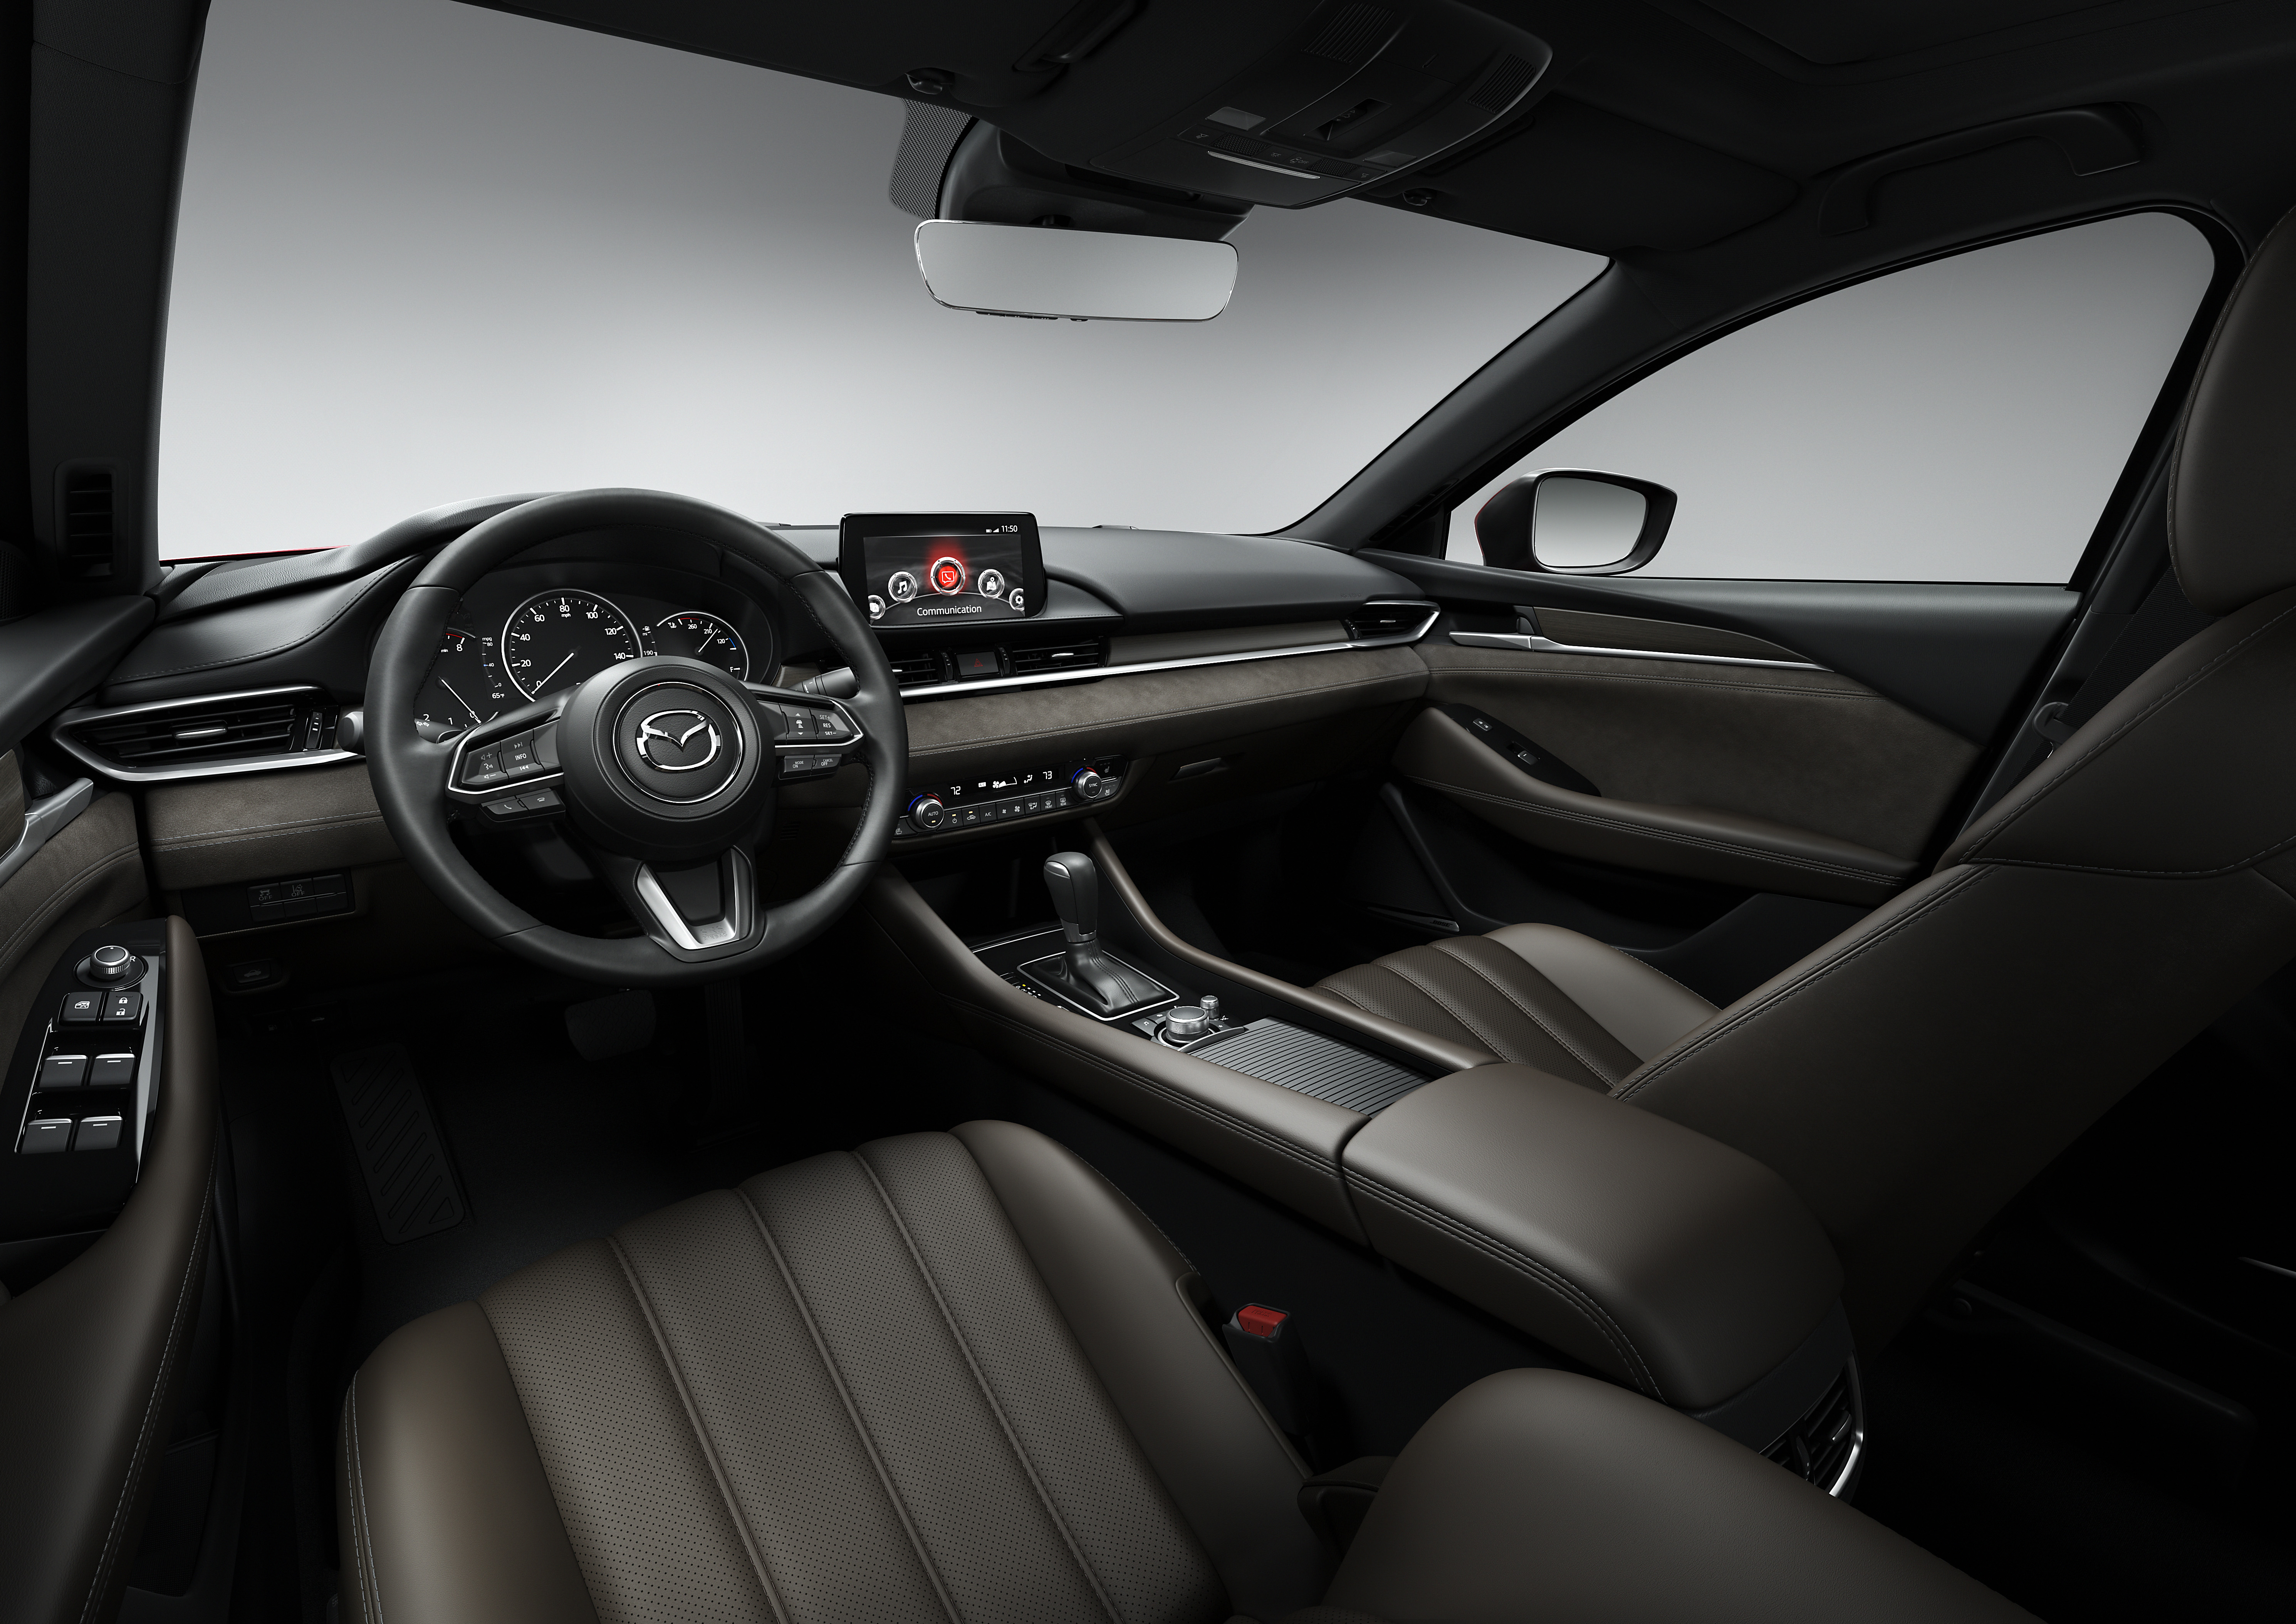 2018 mazda 6 facelift makes la debut with 2 5l turbo paul tan image 745511. Black Bedroom Furniture Sets. Home Design Ideas